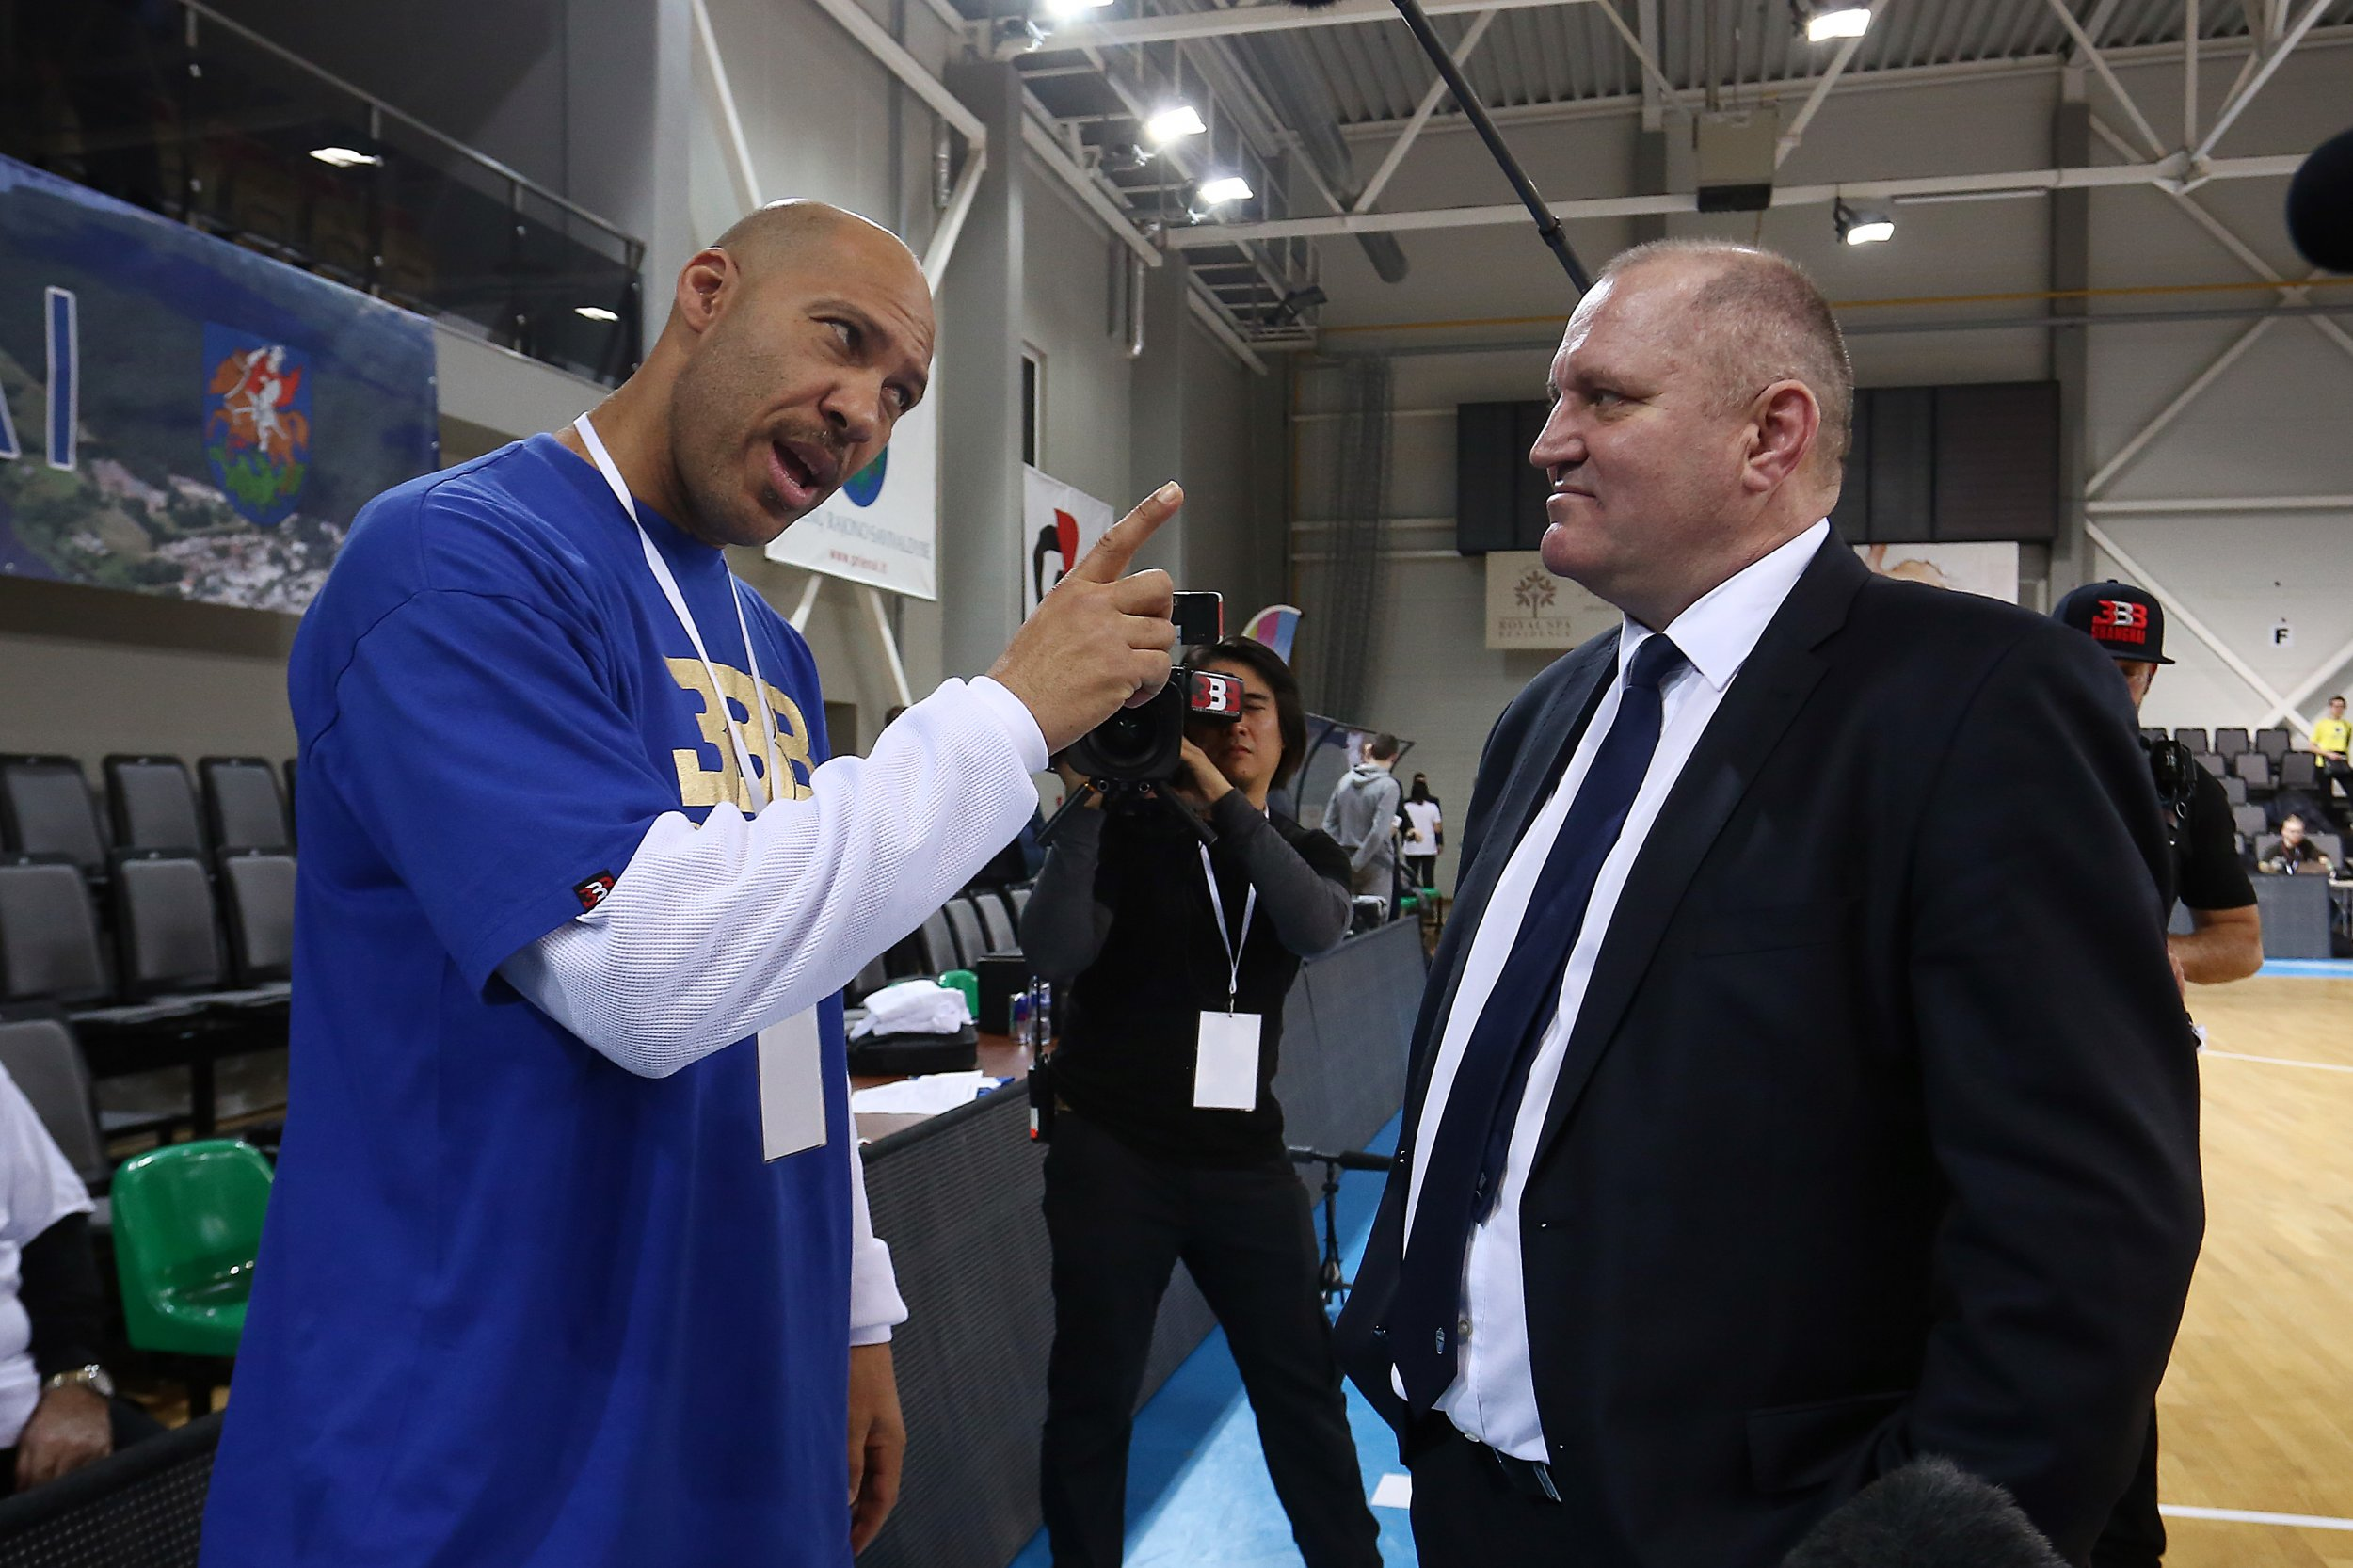 LaVar Ball, father of LiAngelo and LaMelo Ball, talks to Virginijus Seskus, head coach of Vytautas Prienai, in Prienai, Lithuania, January 9.